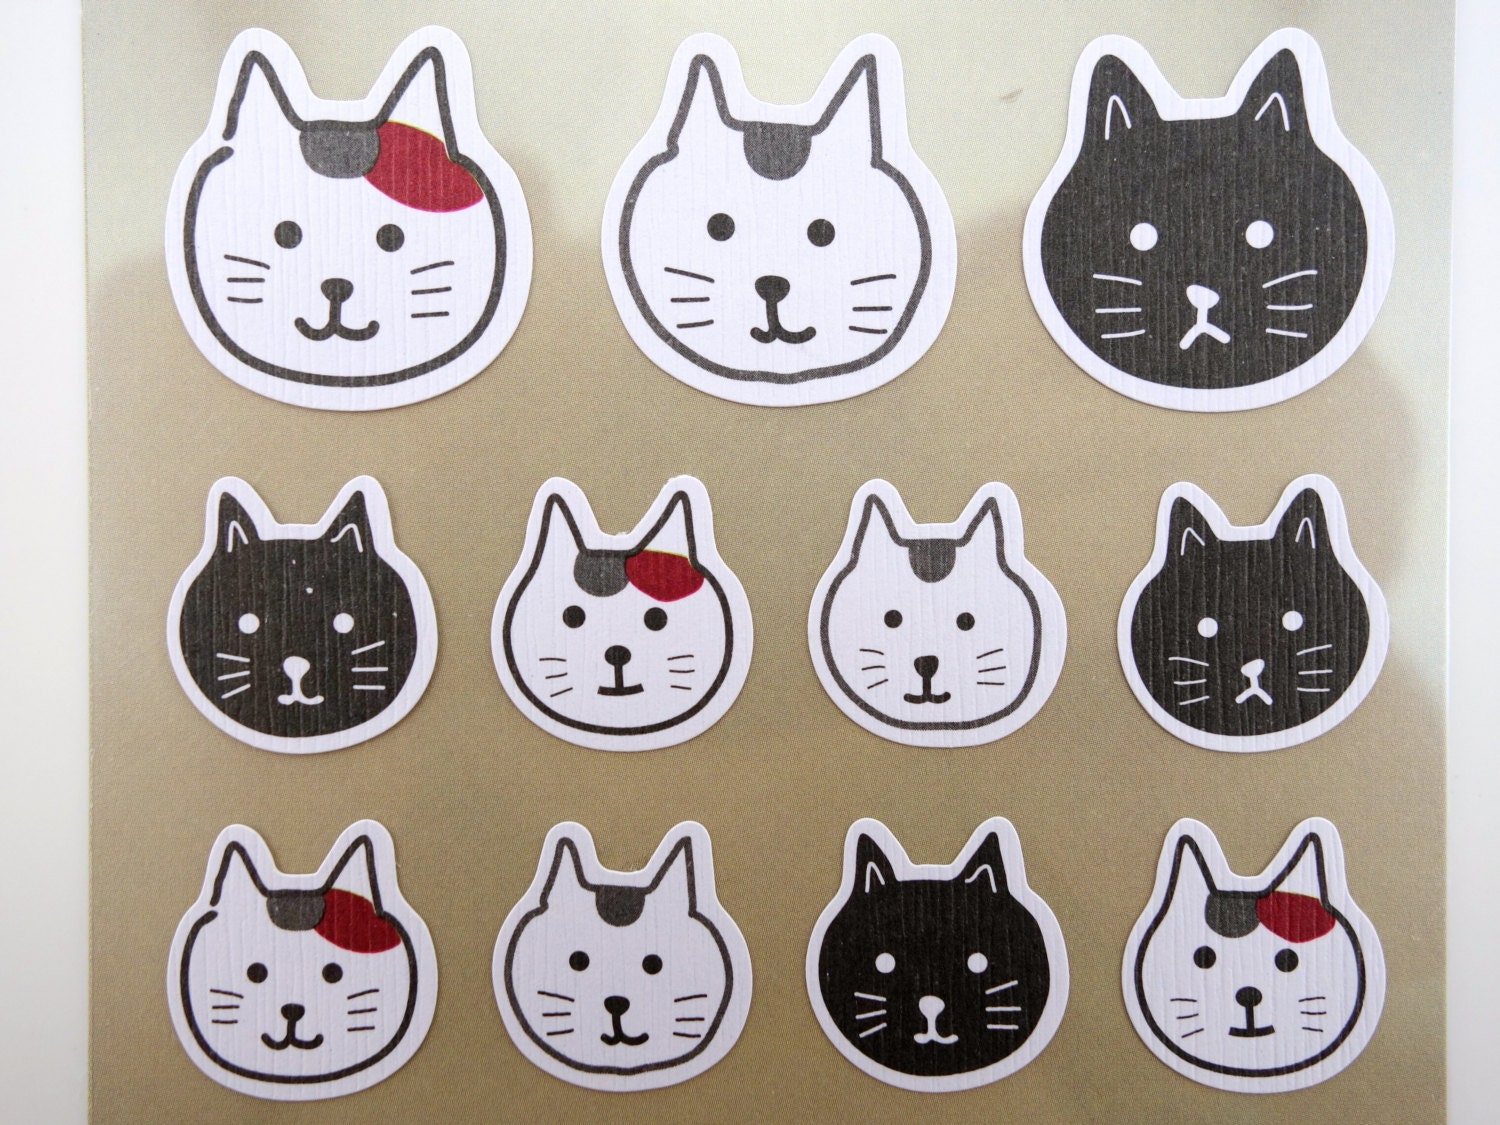 japanese cat emoticon face chiyogami paper stickers cute